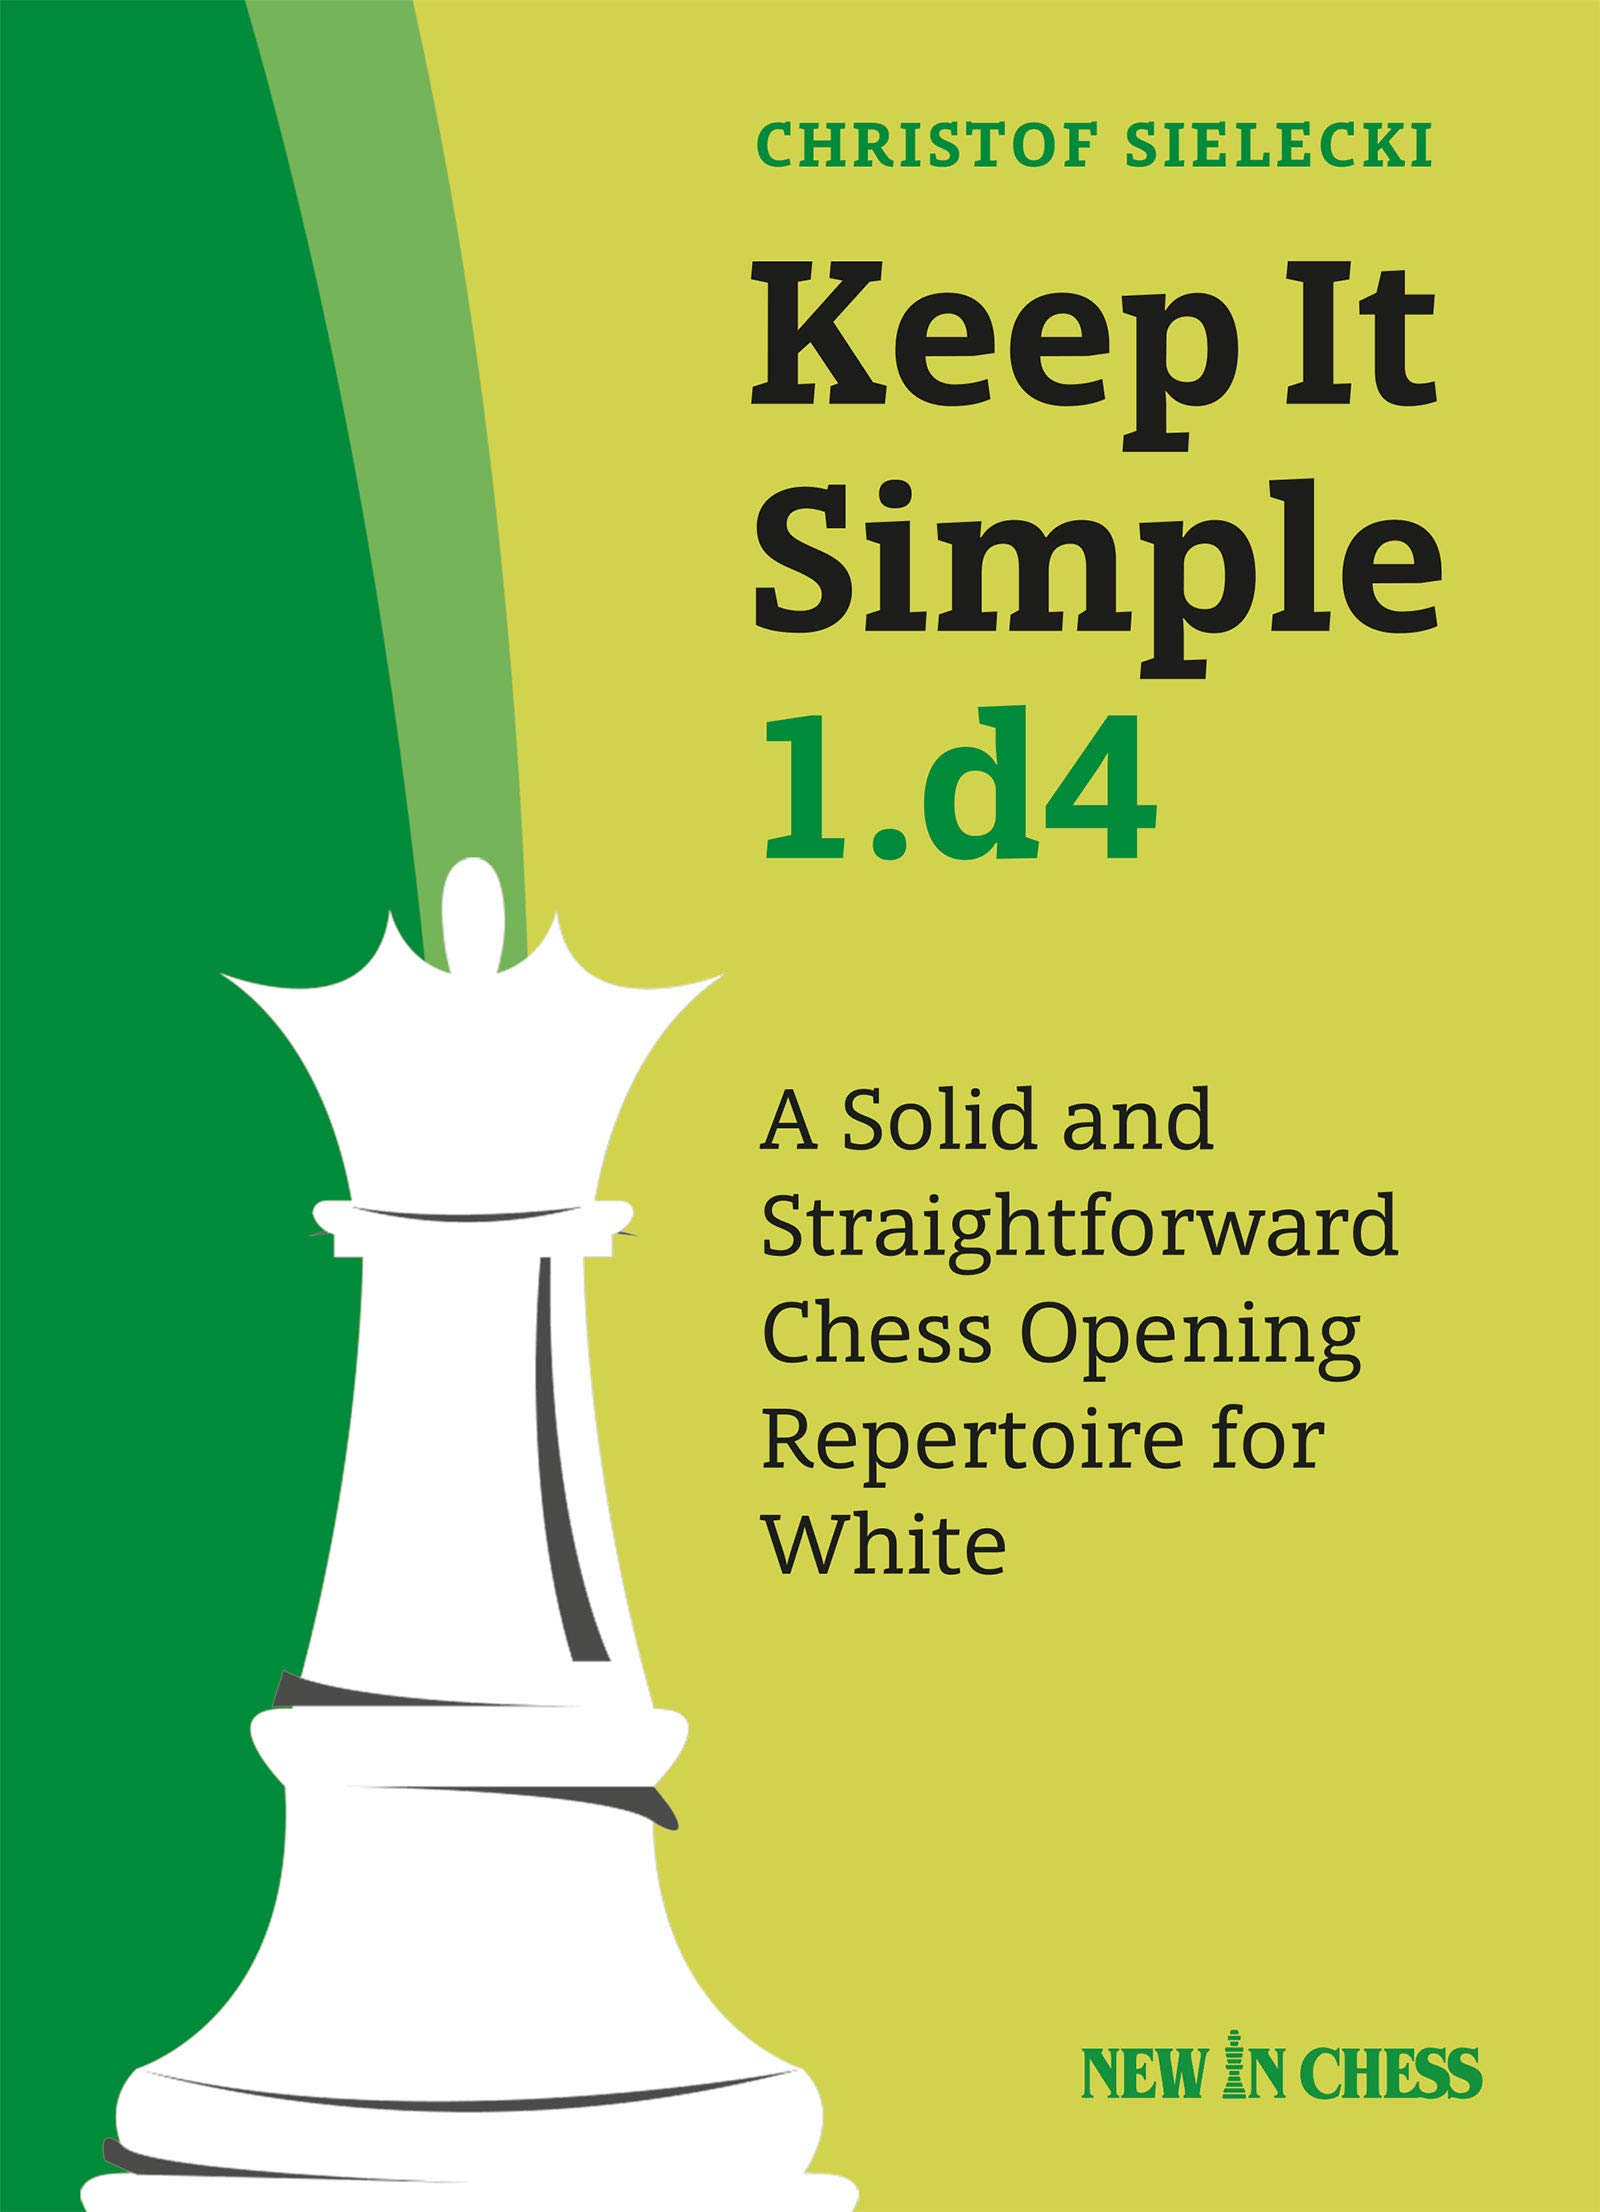 Keep it Simple 1.d4 by Christor Sielecki